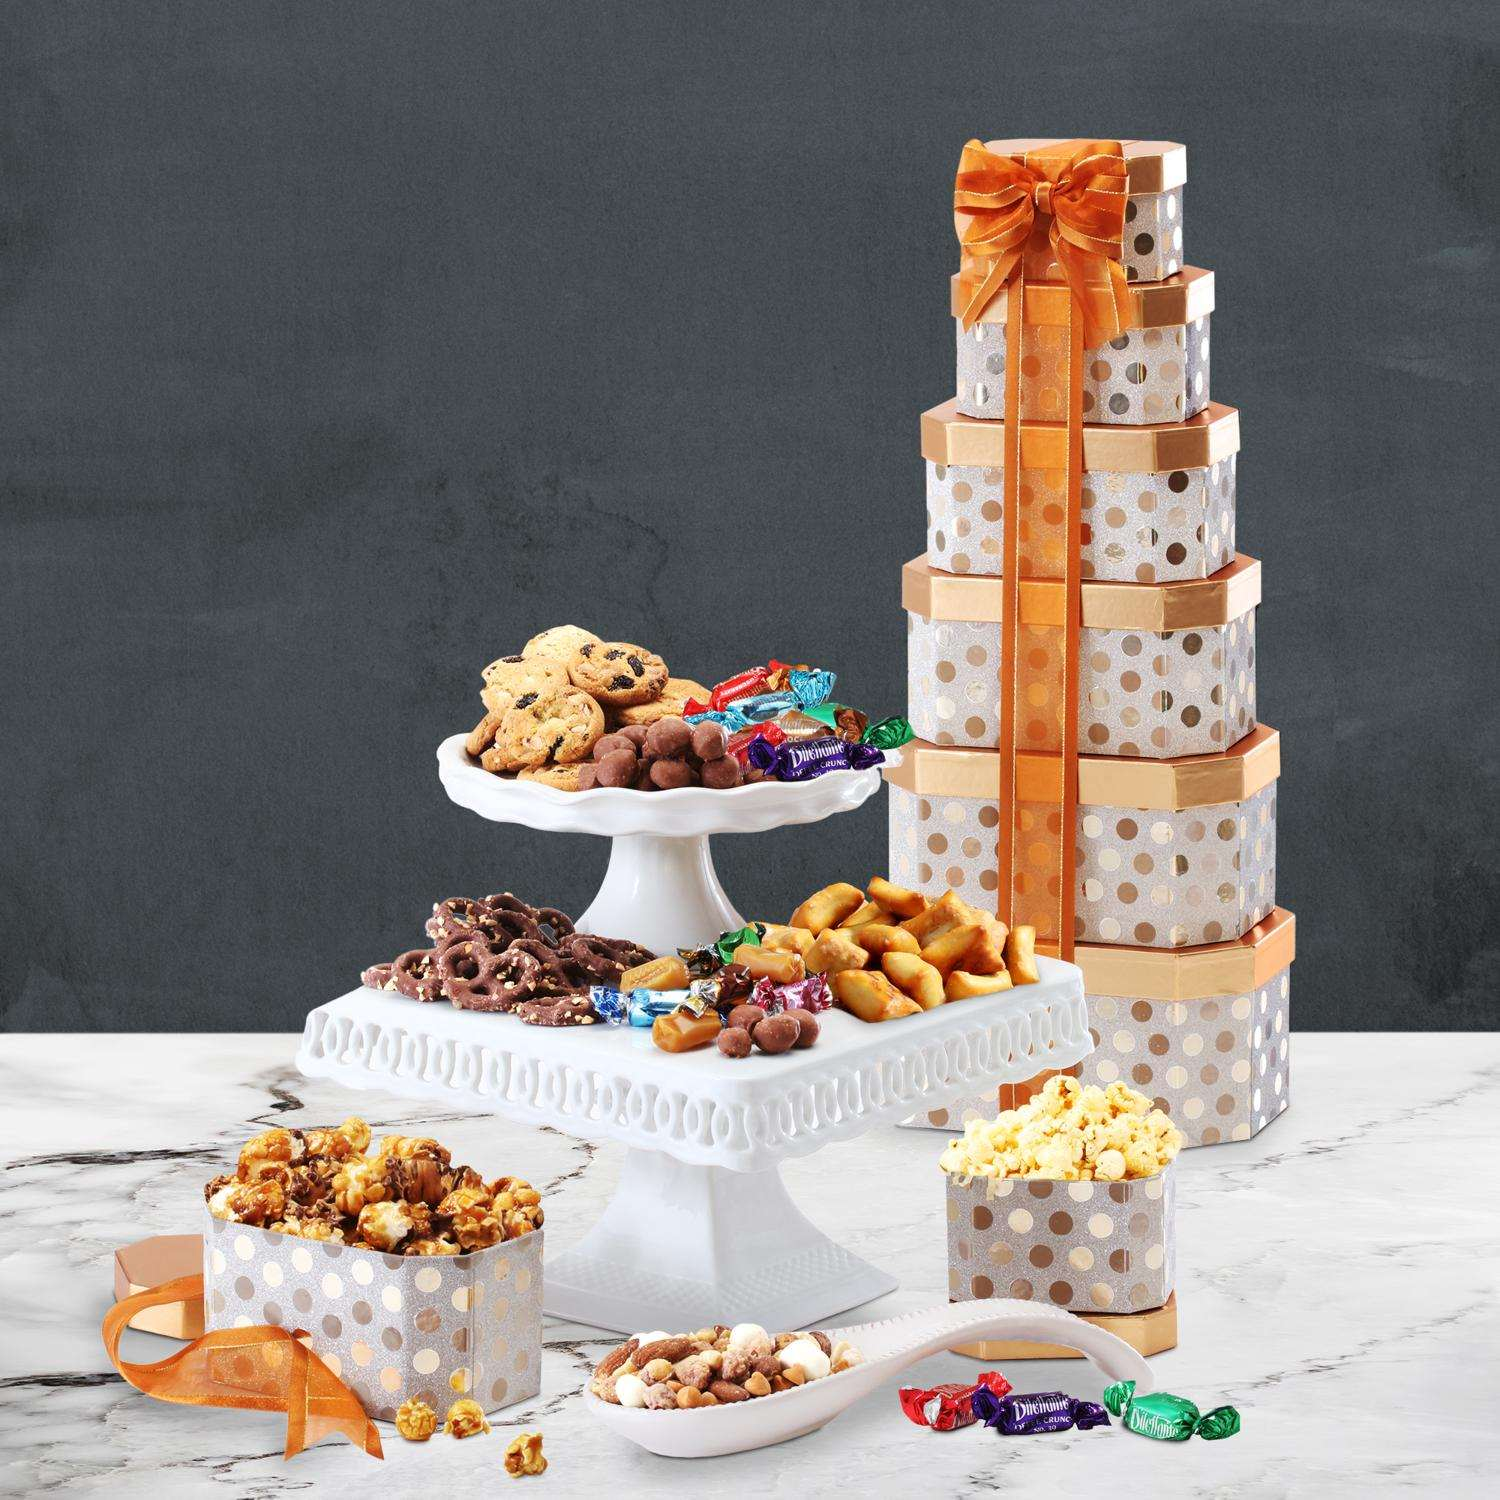 Economy Shipping 399 Sophisticated Birthday Tower